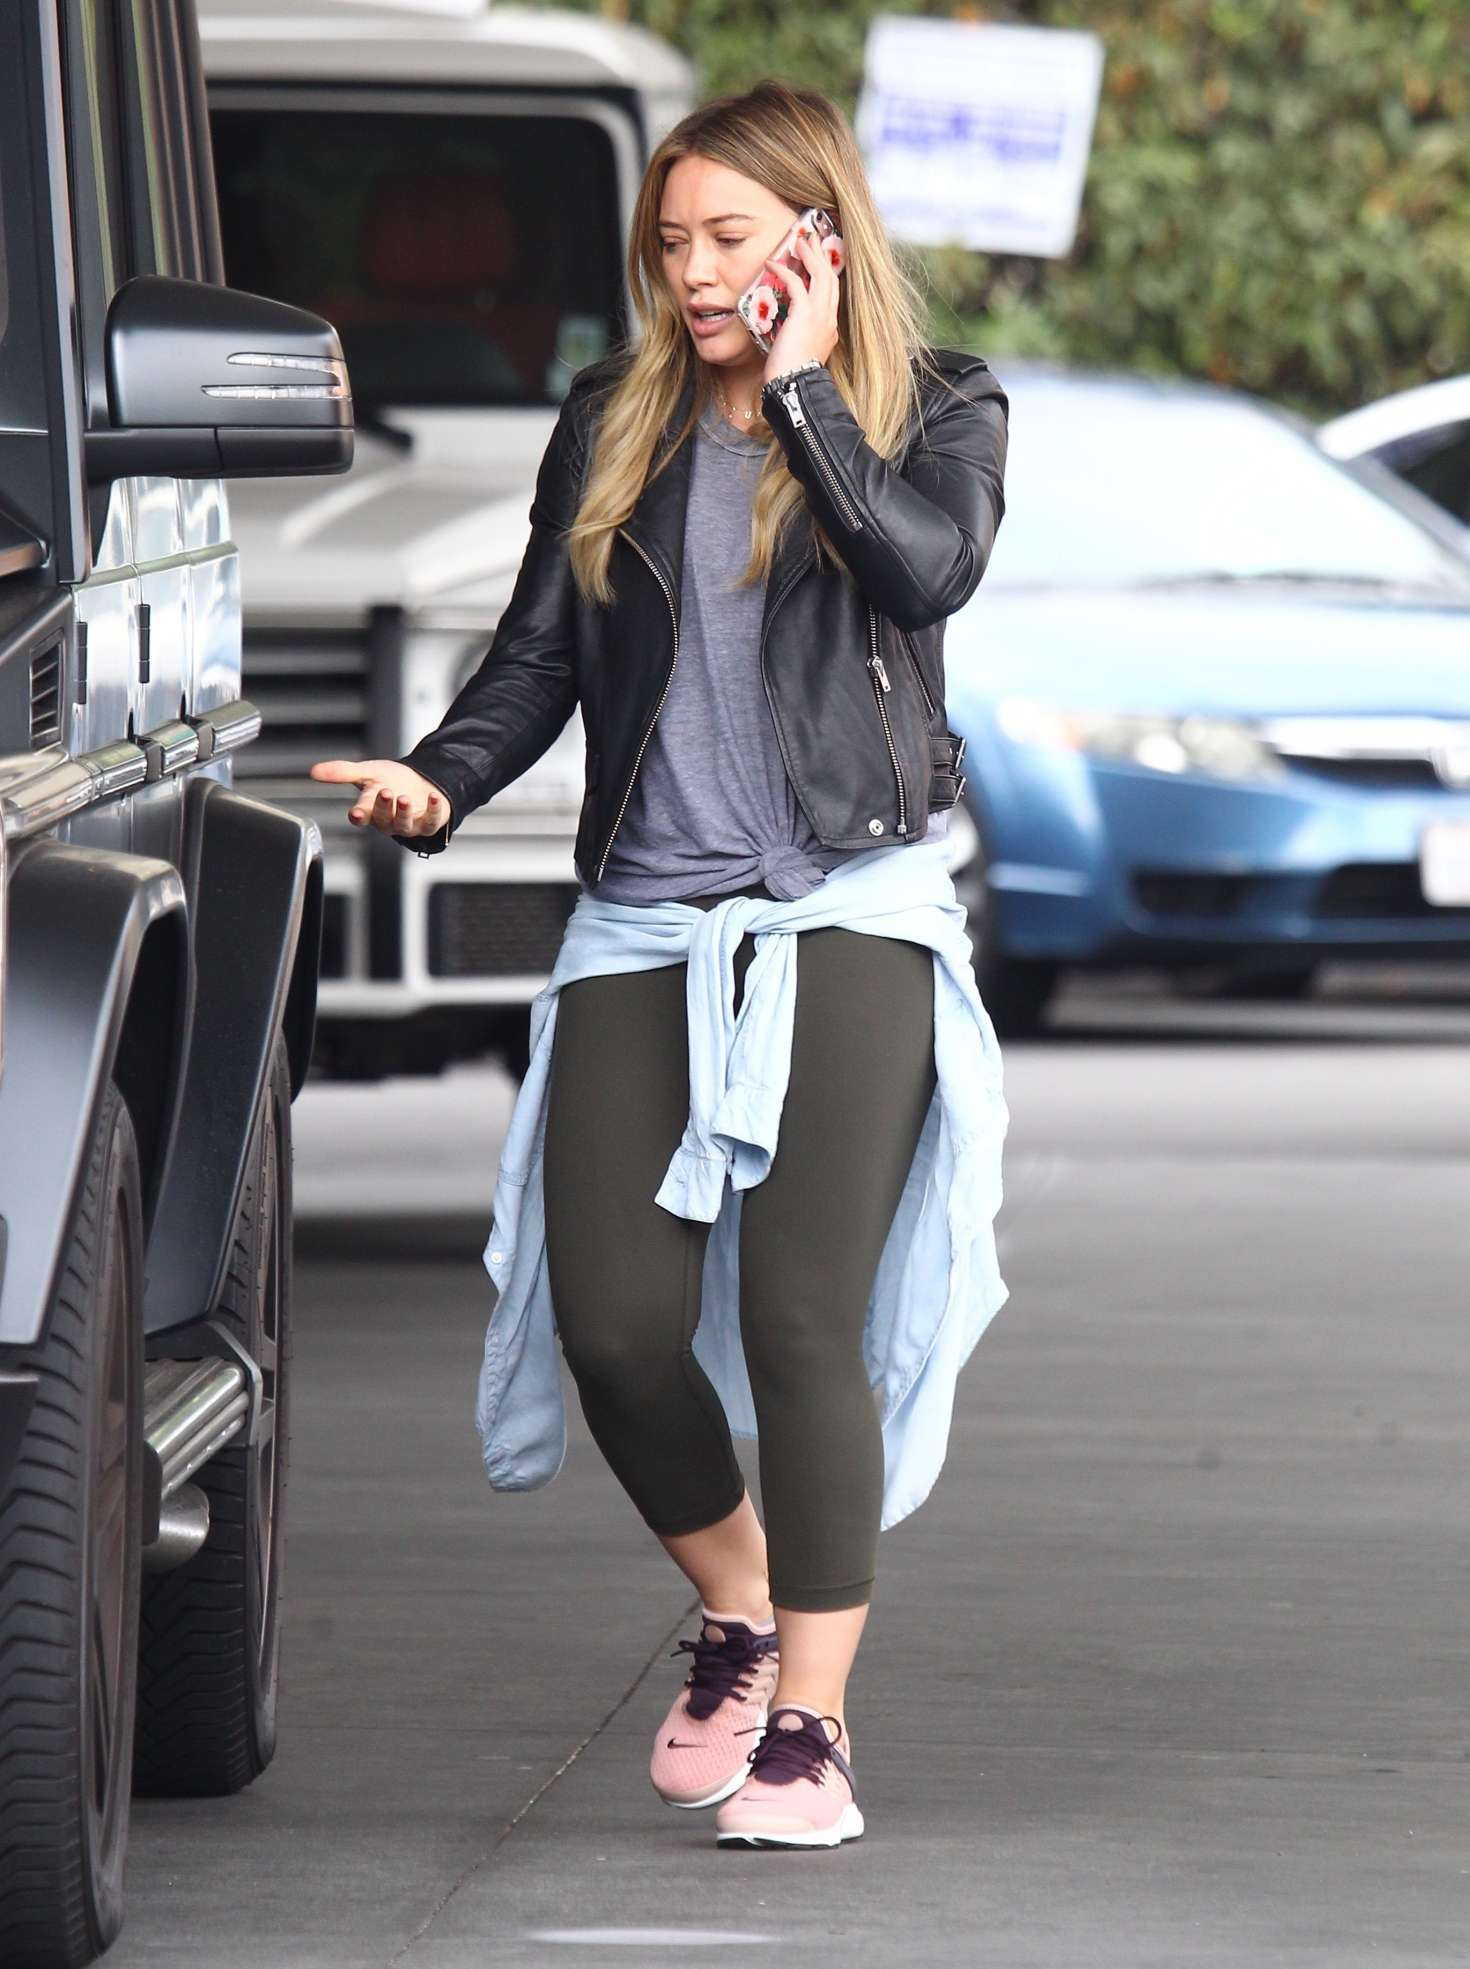 Hilary Duff 2016 : Hilary Duff at a gas station -02